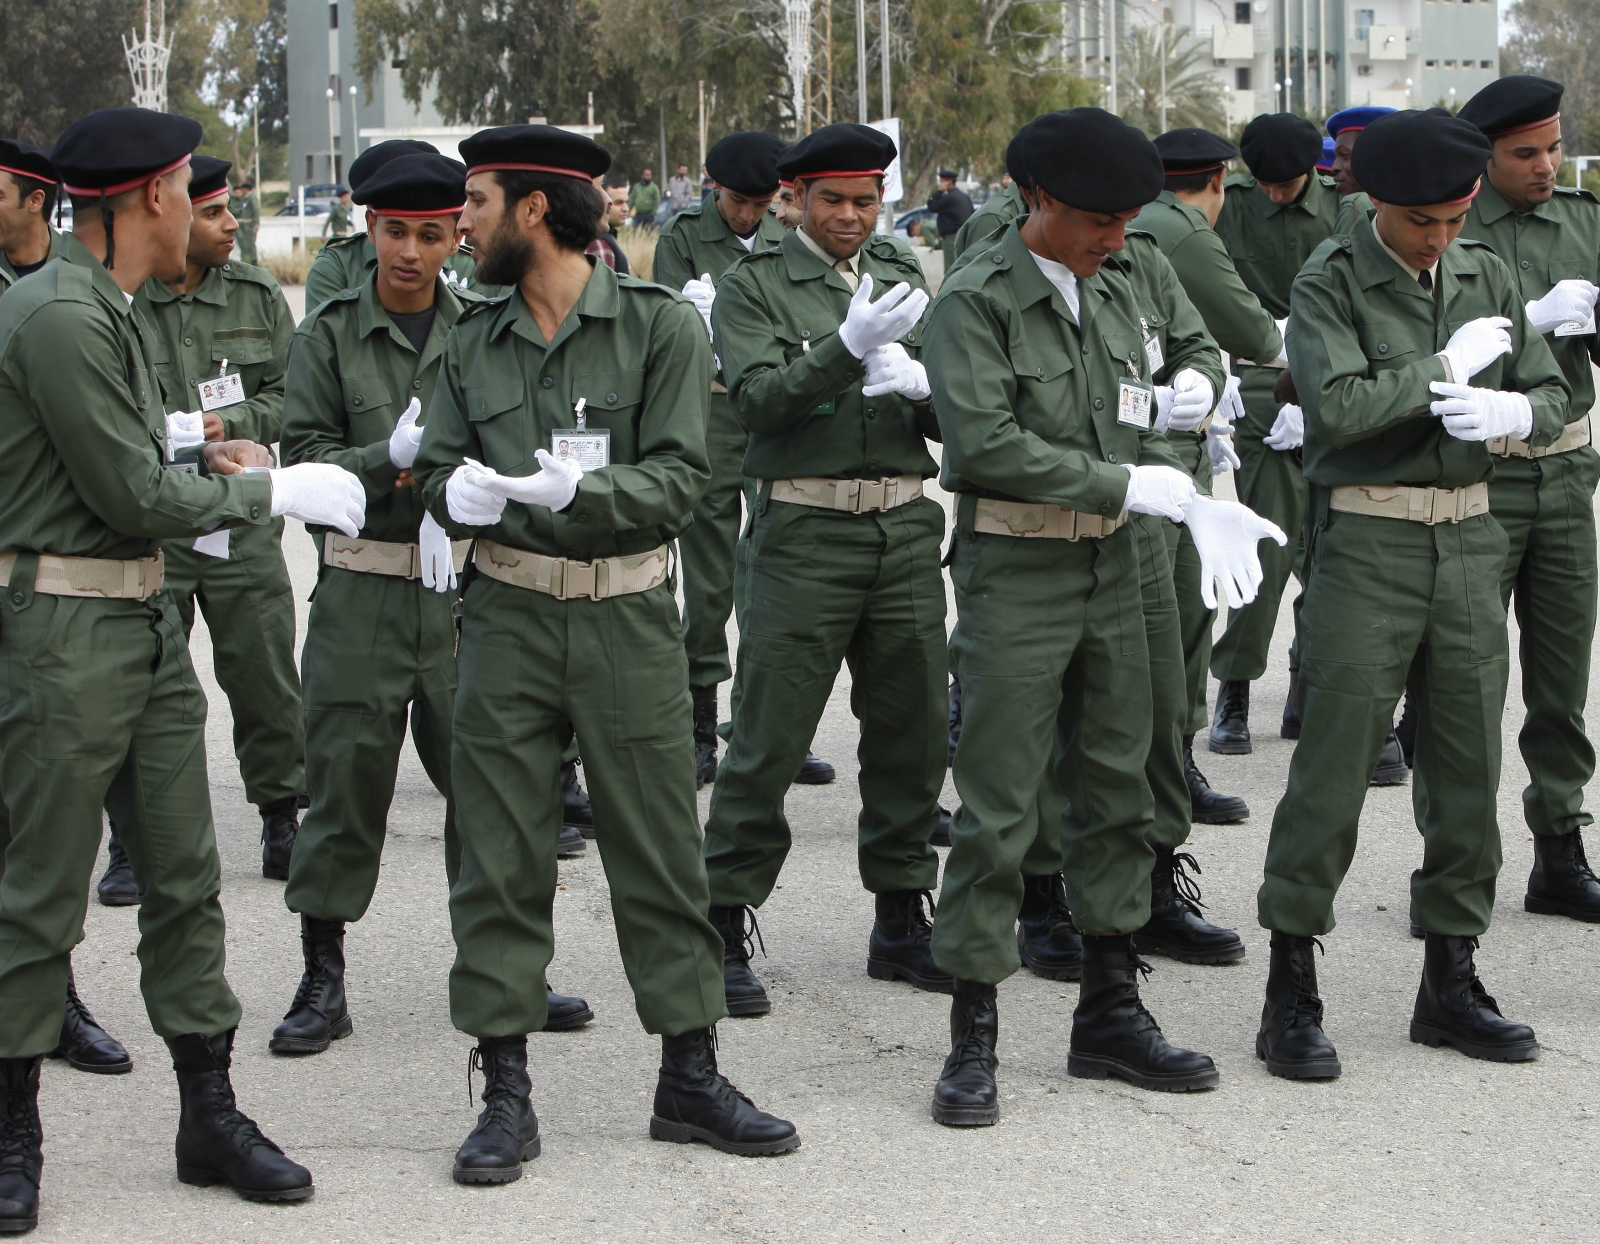 Cadets prepare for a Libyan Army graduation ceremony in Tripoli